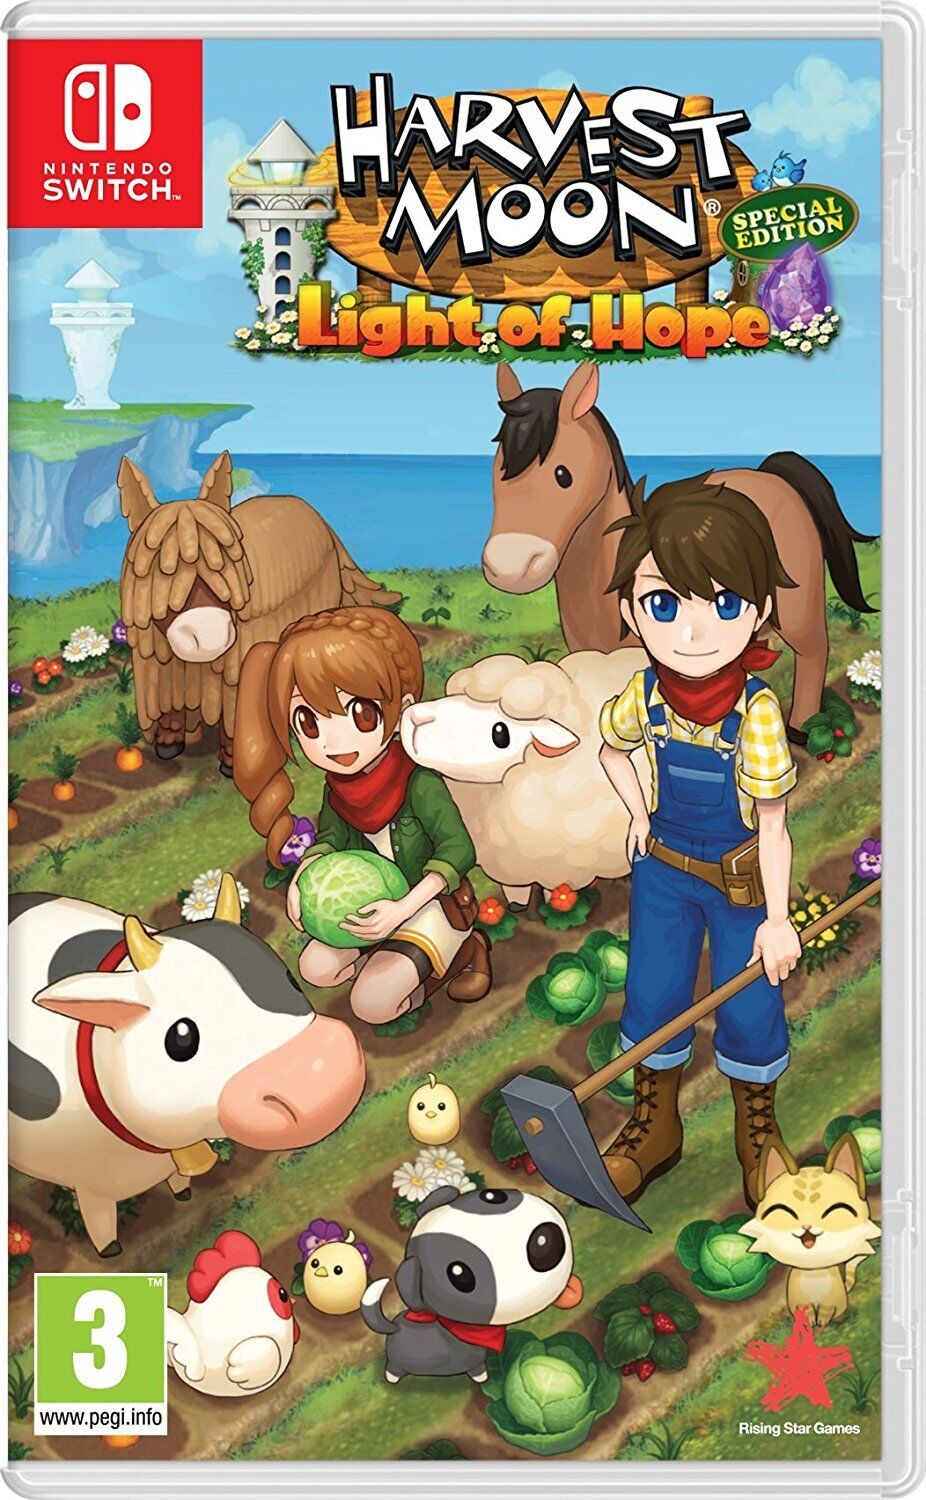 Details about Harvest Moon Light of Hope Special Edition for Nintendo  Switch NS